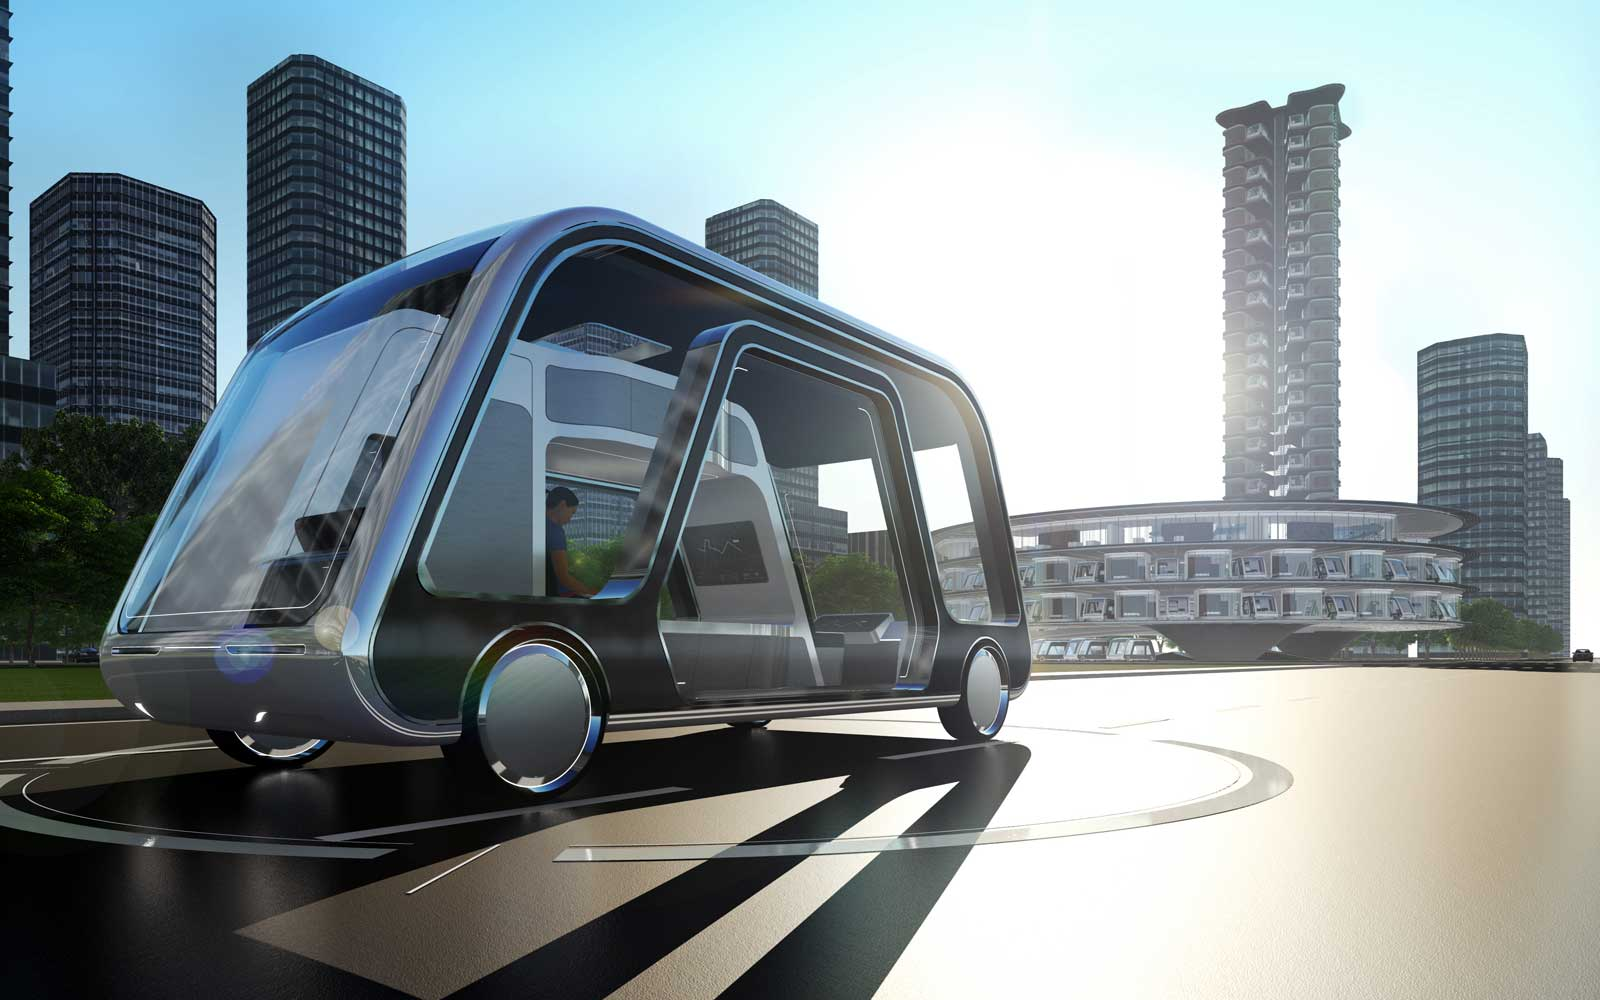 Personal hotel suite vehicle concept